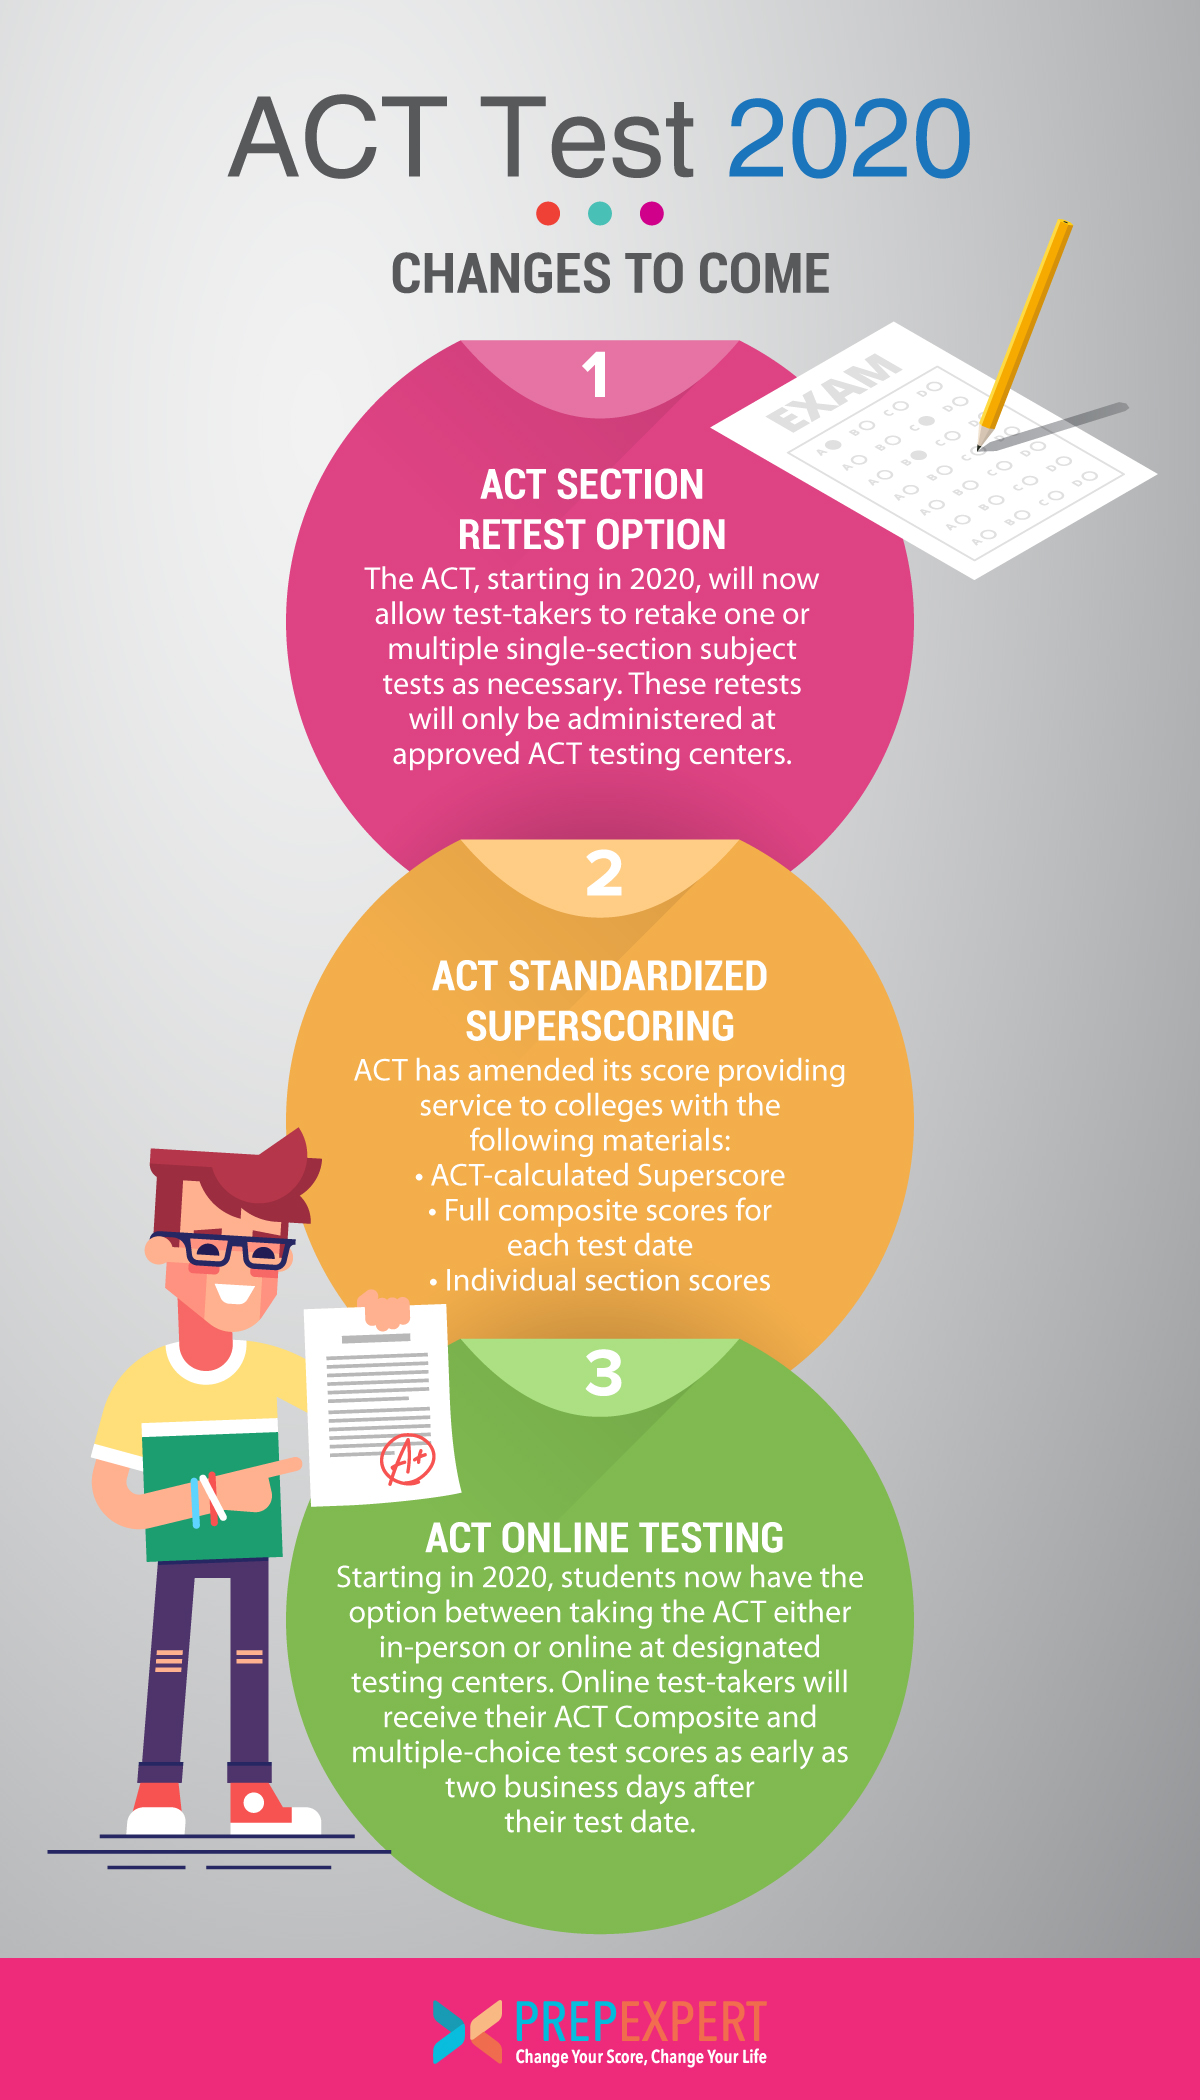 Act Test Changes To Come